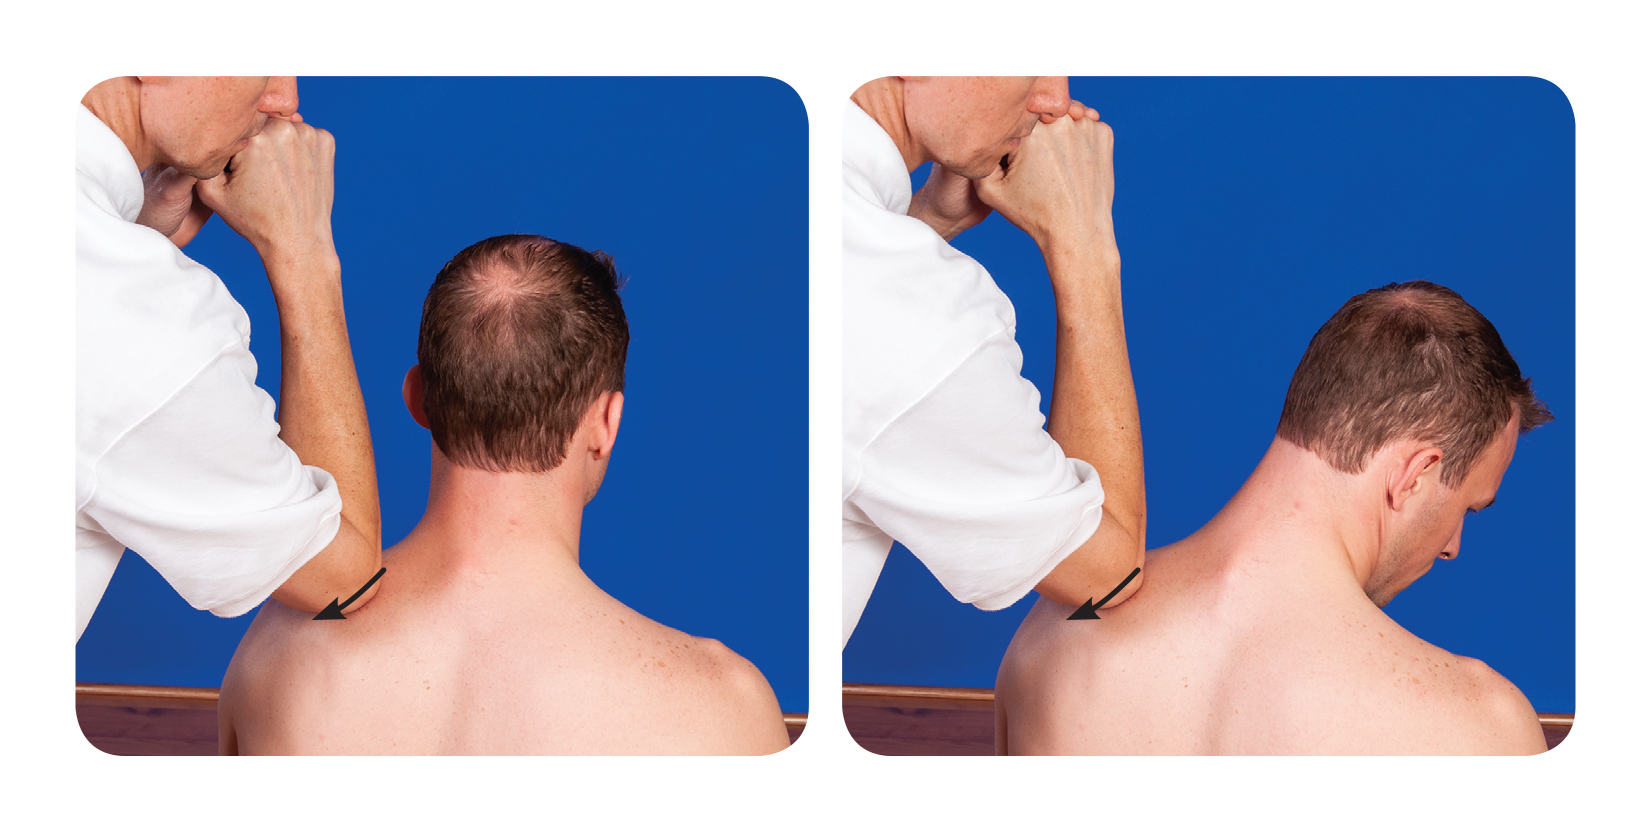 Active assisted soft tissue release for the upper back levator scapulae